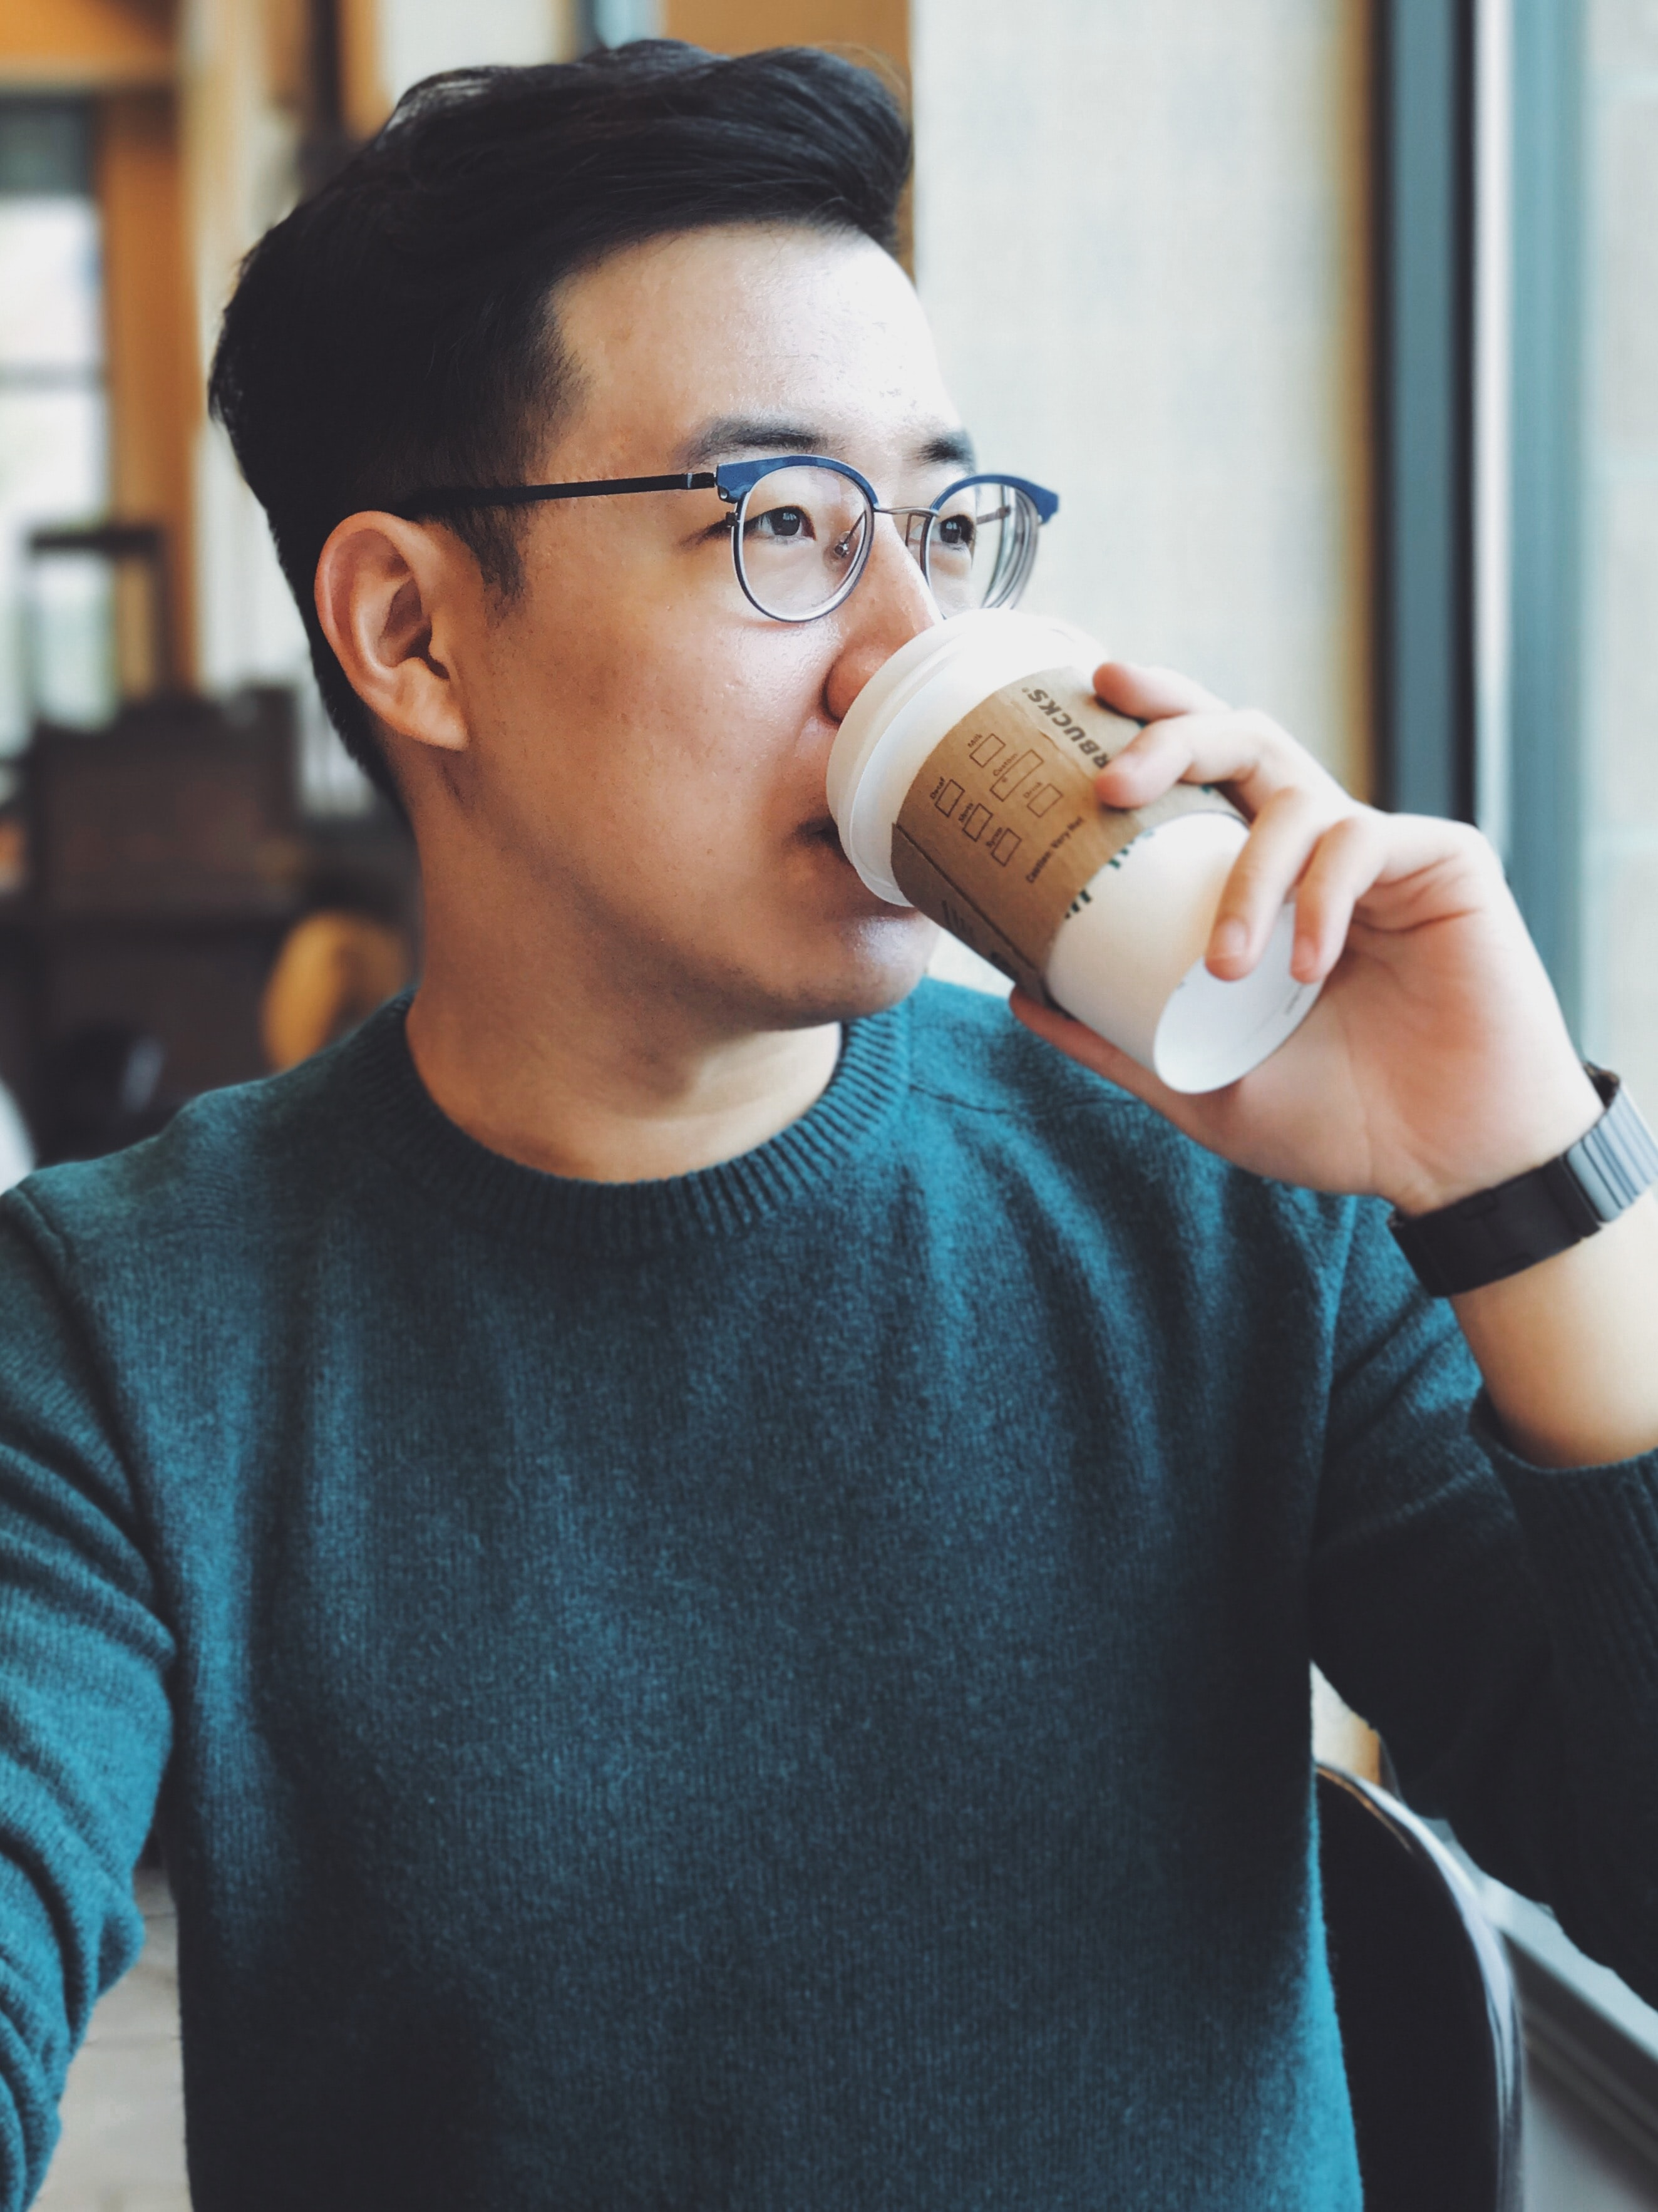 man holding Starbucks disposable cup